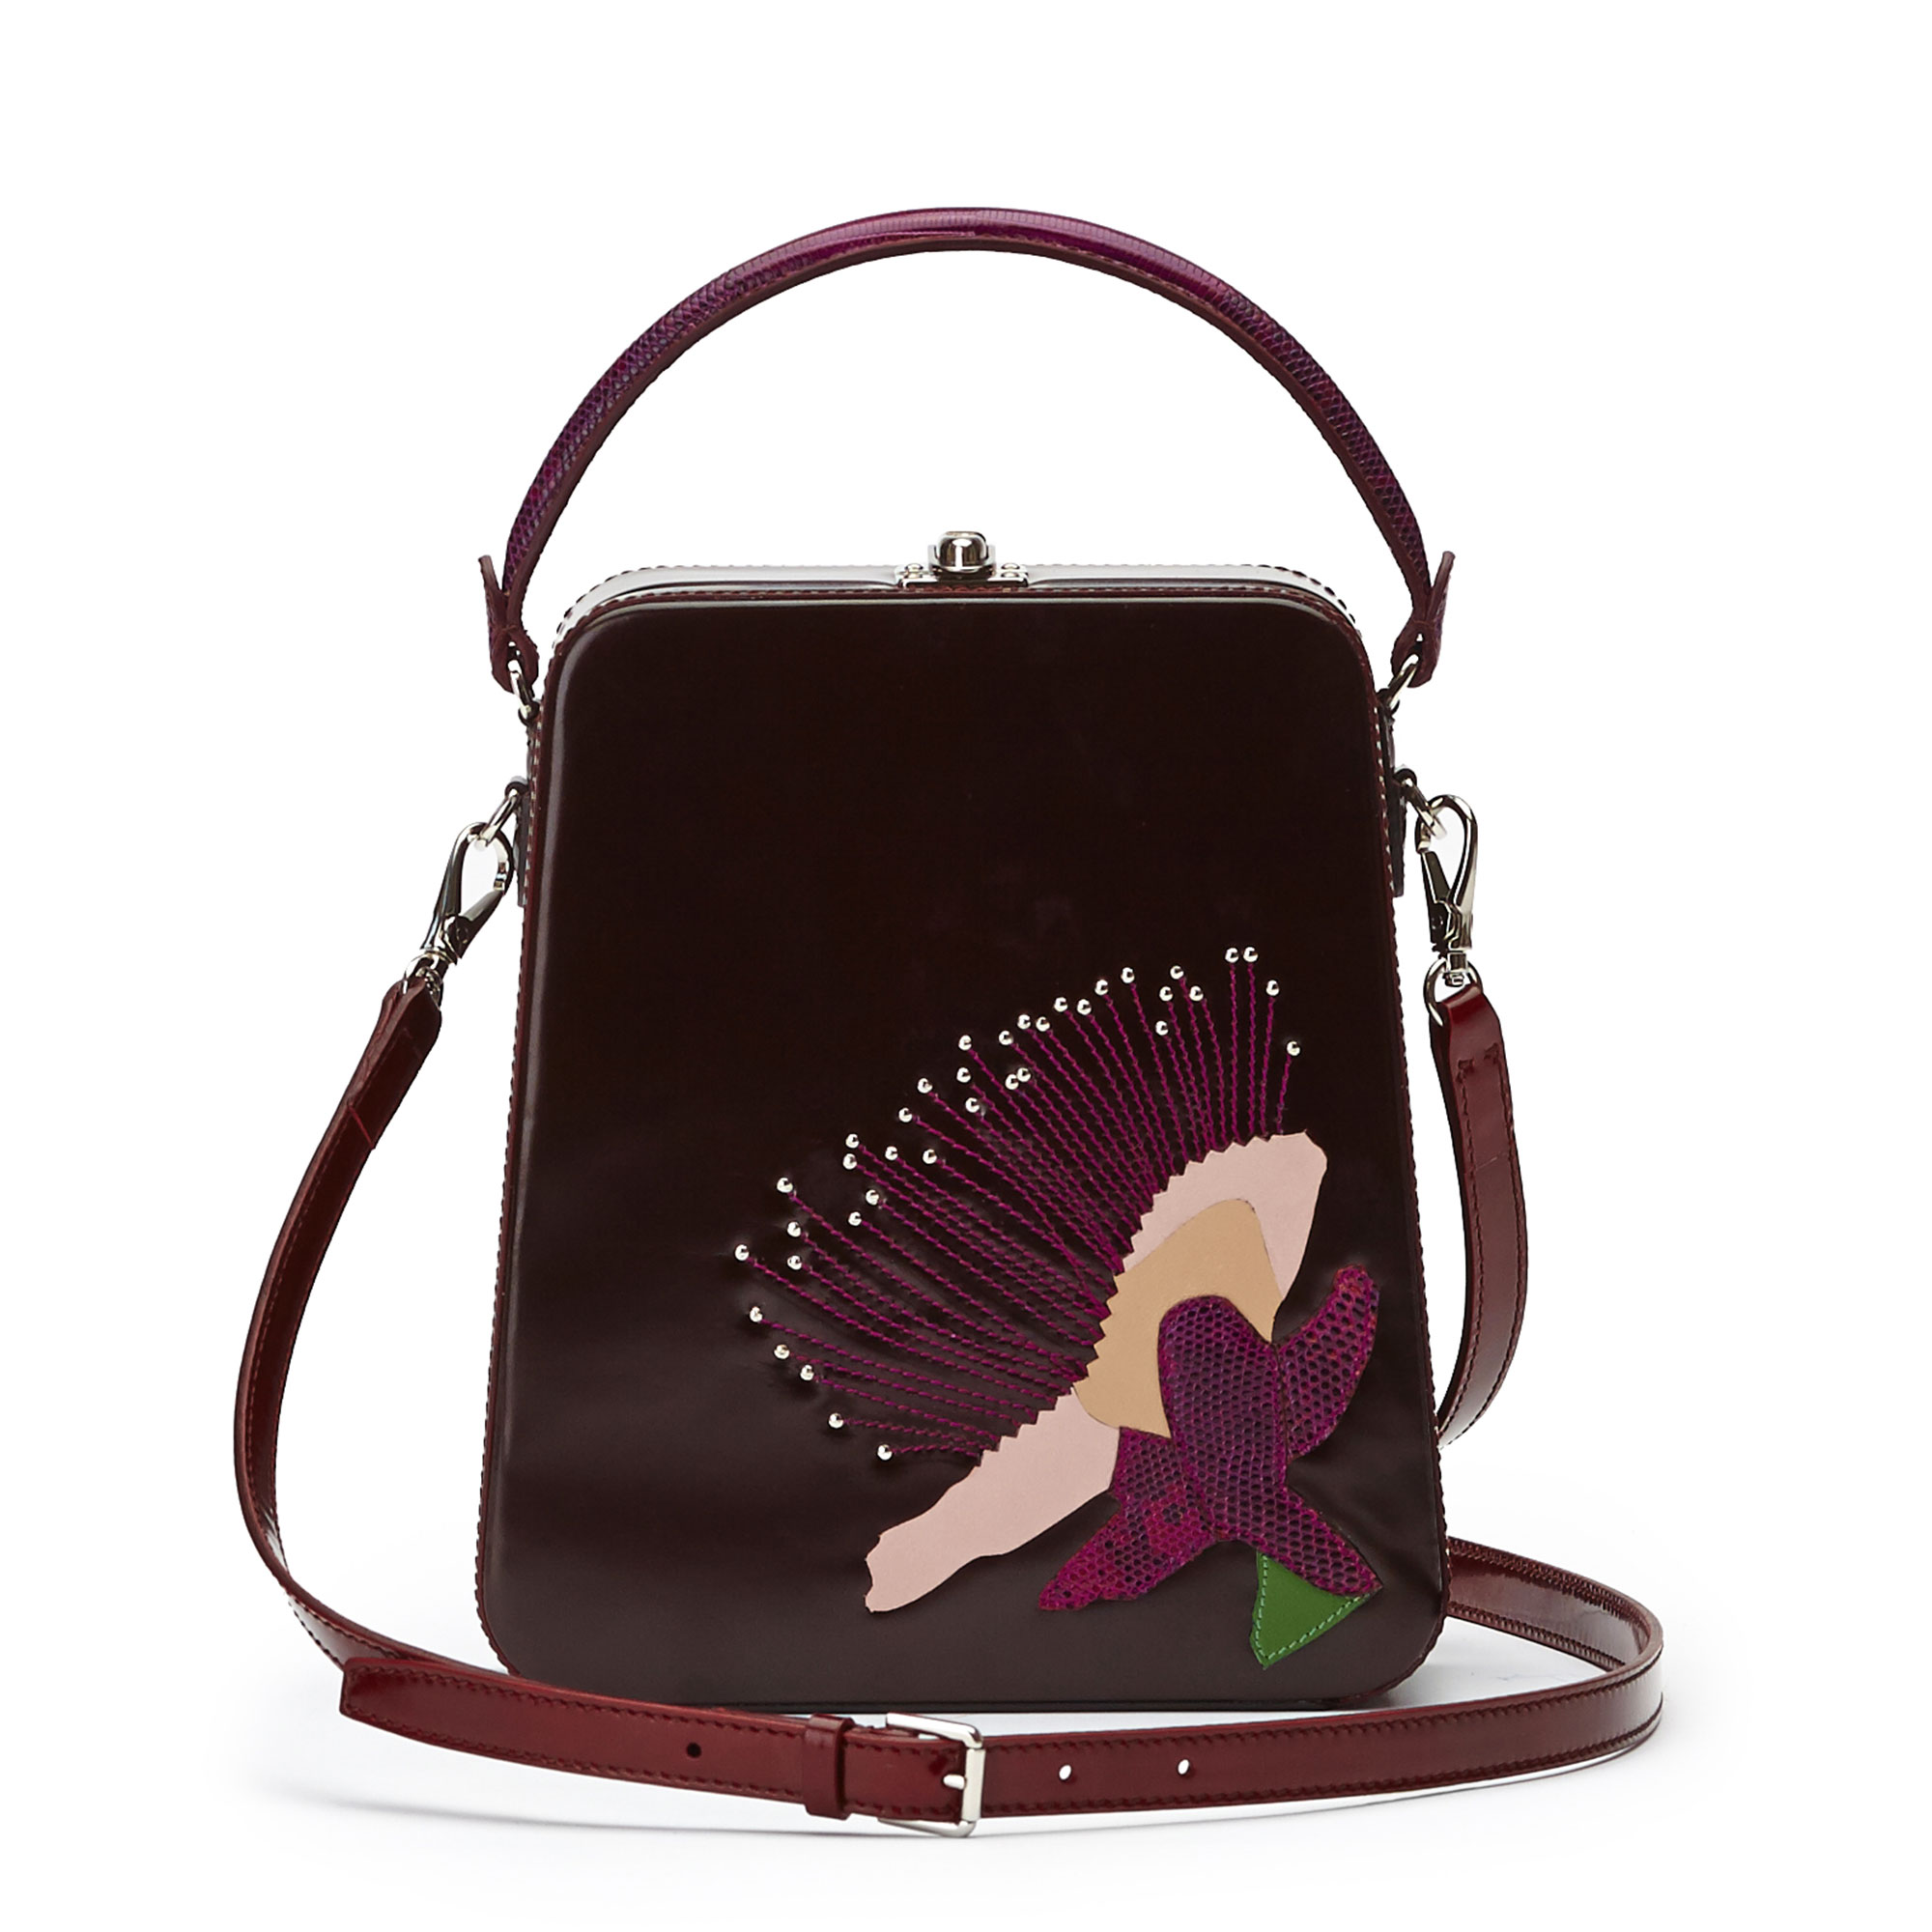 The bordeaux with embroidered flower brushed calf Tall Bertoncina bag by Bertoni 1949 03